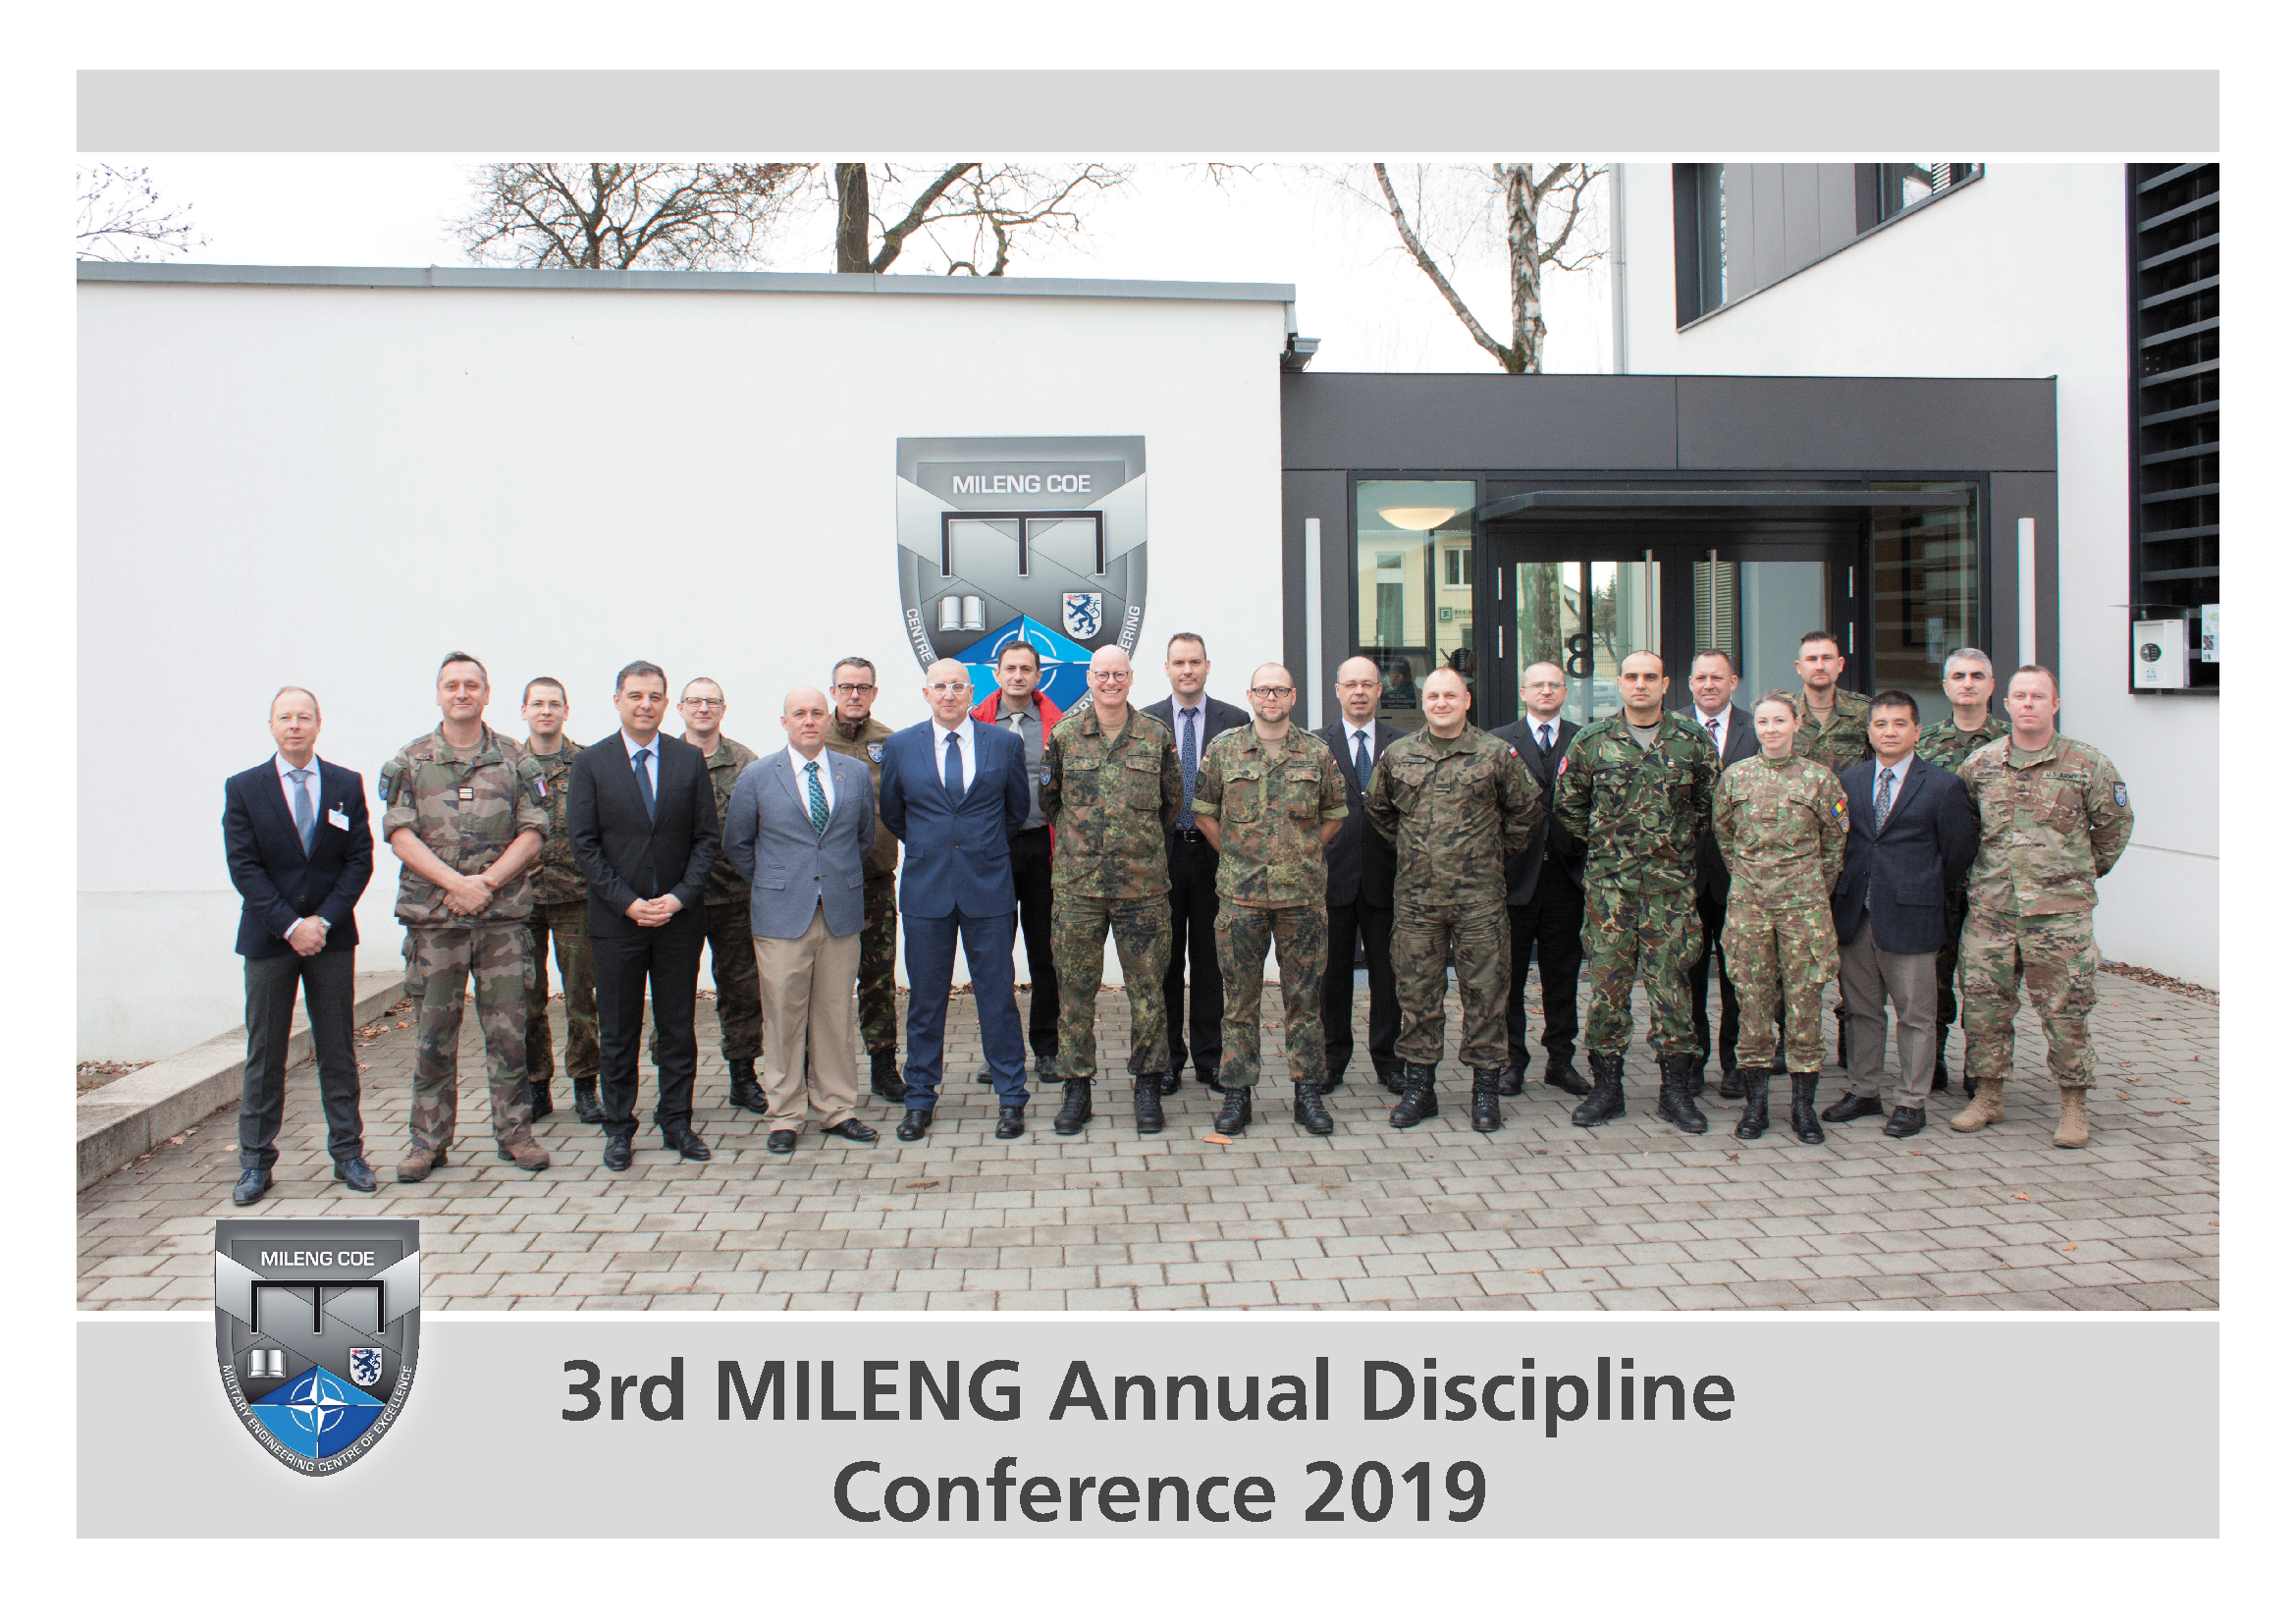 3rd MILENG Annual Discipline Conference 2019